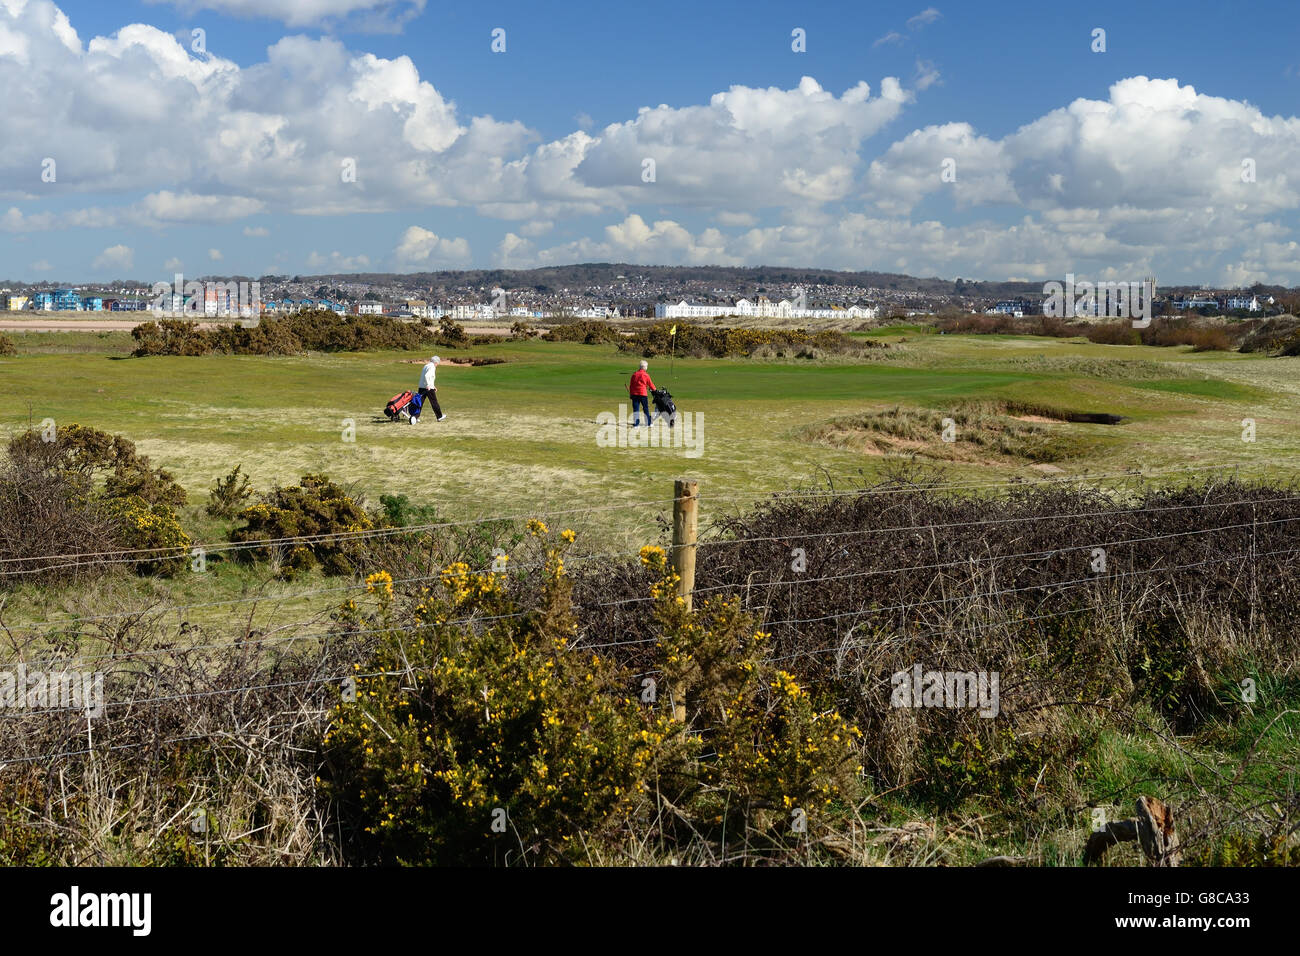 Seaside golf course, looking towards Exmouth. - Stock Image